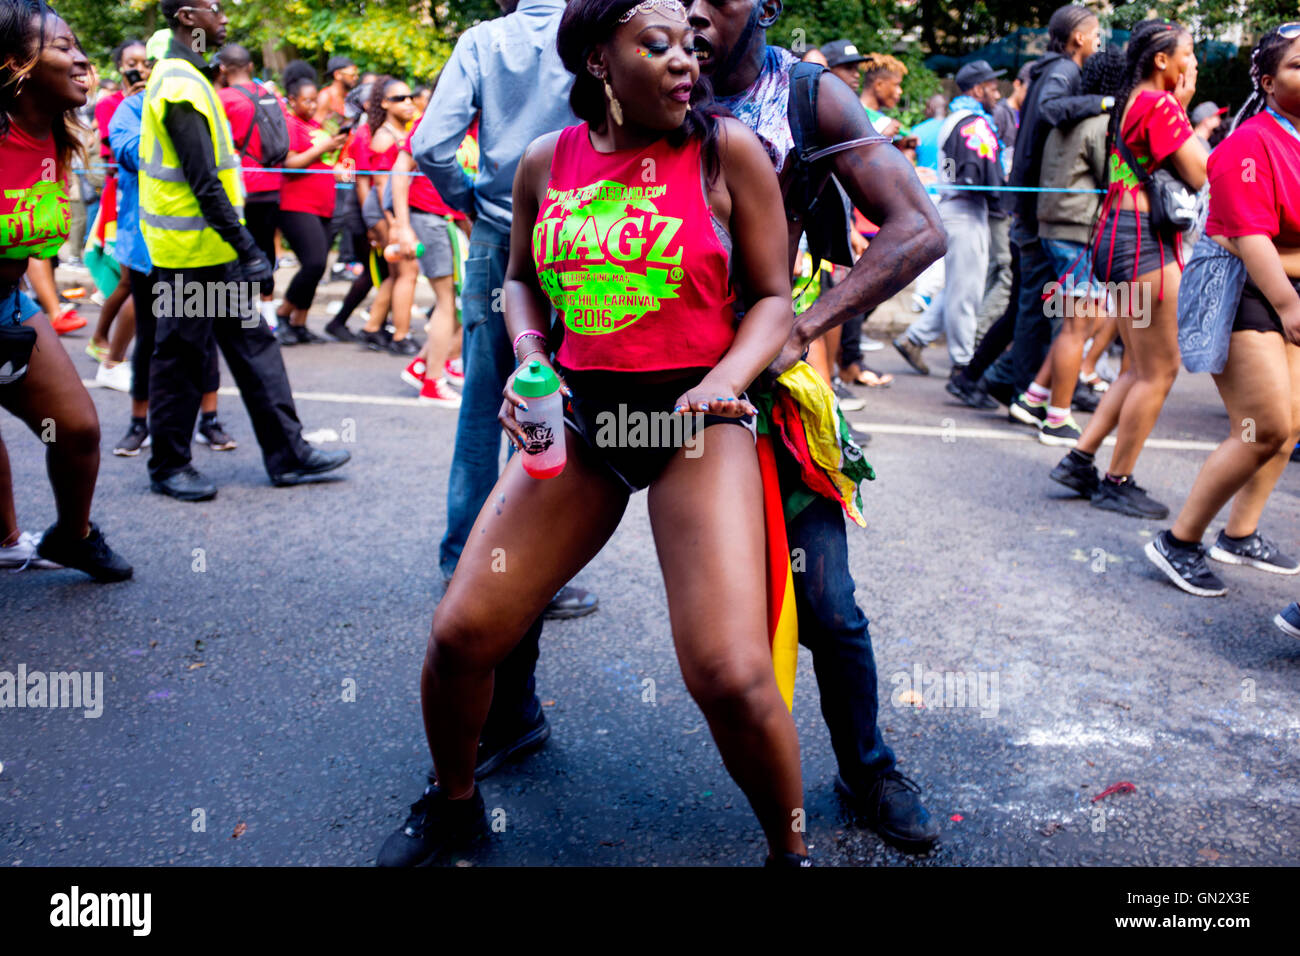 Revelers at the 50th Notting Hill Carnival, London, 2016. Credit:  wayne Tippetts/Alamy Live News - Stock Image